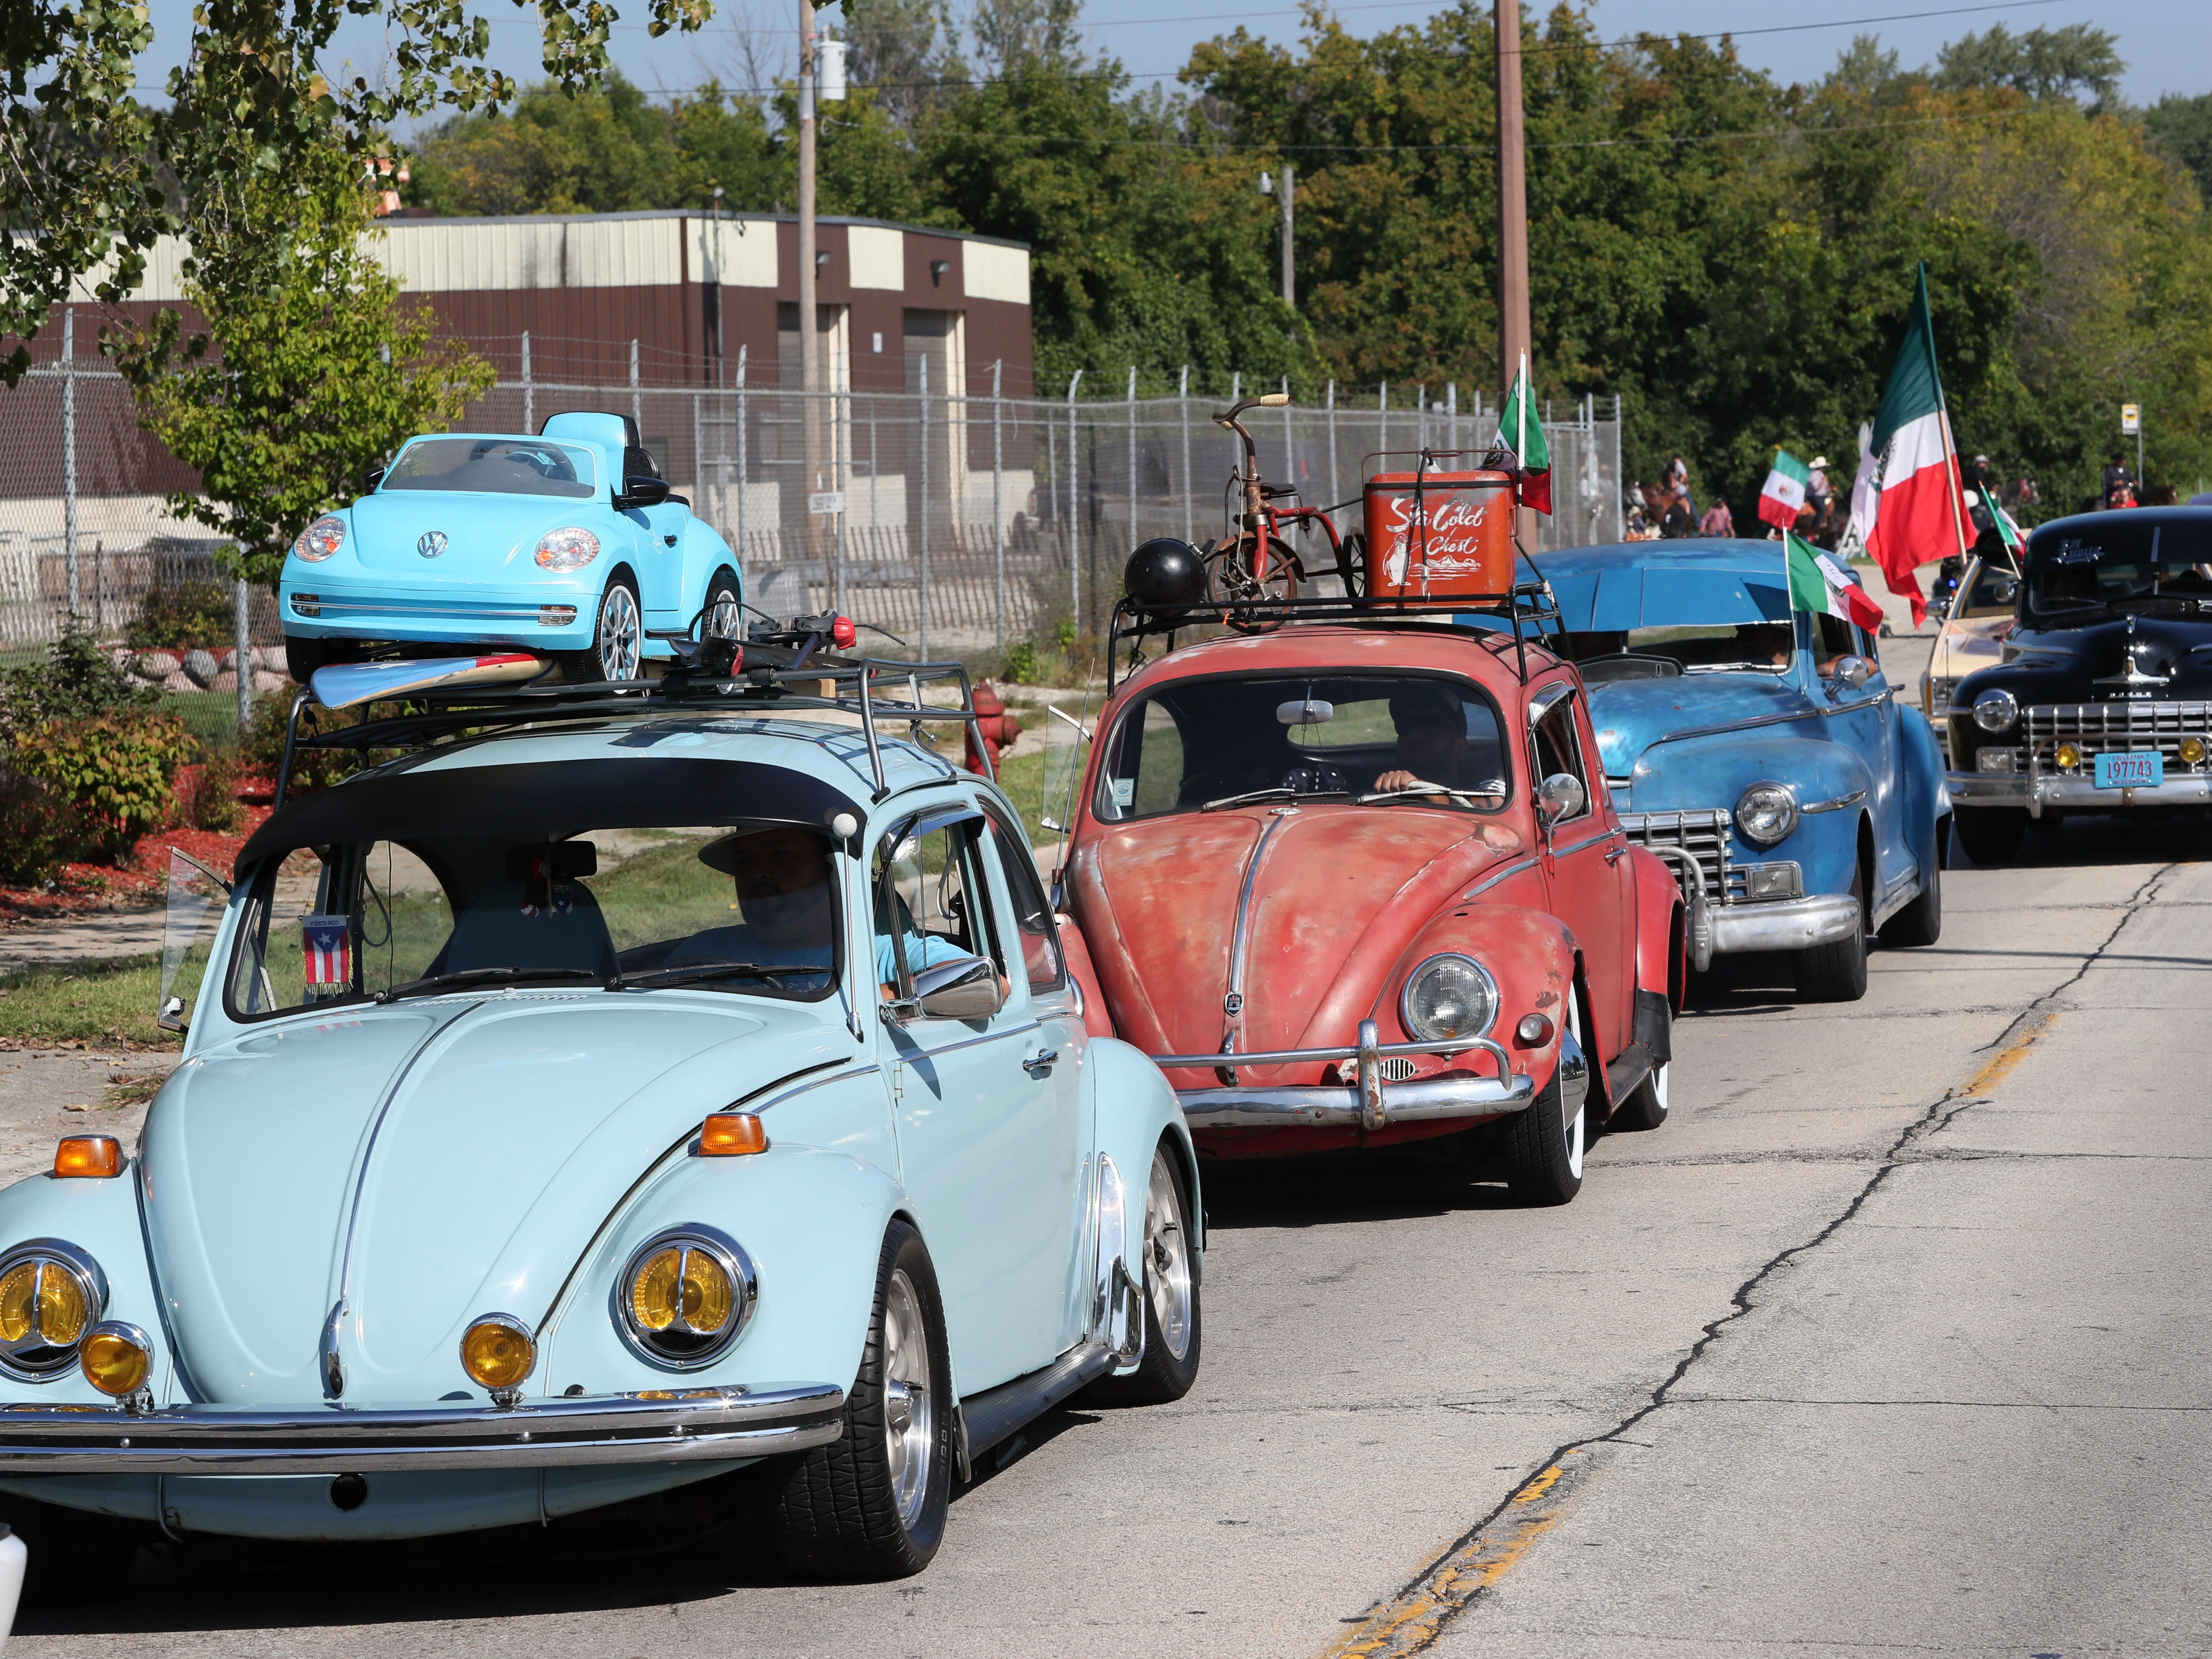 A variety of classic cars take part in the parade.